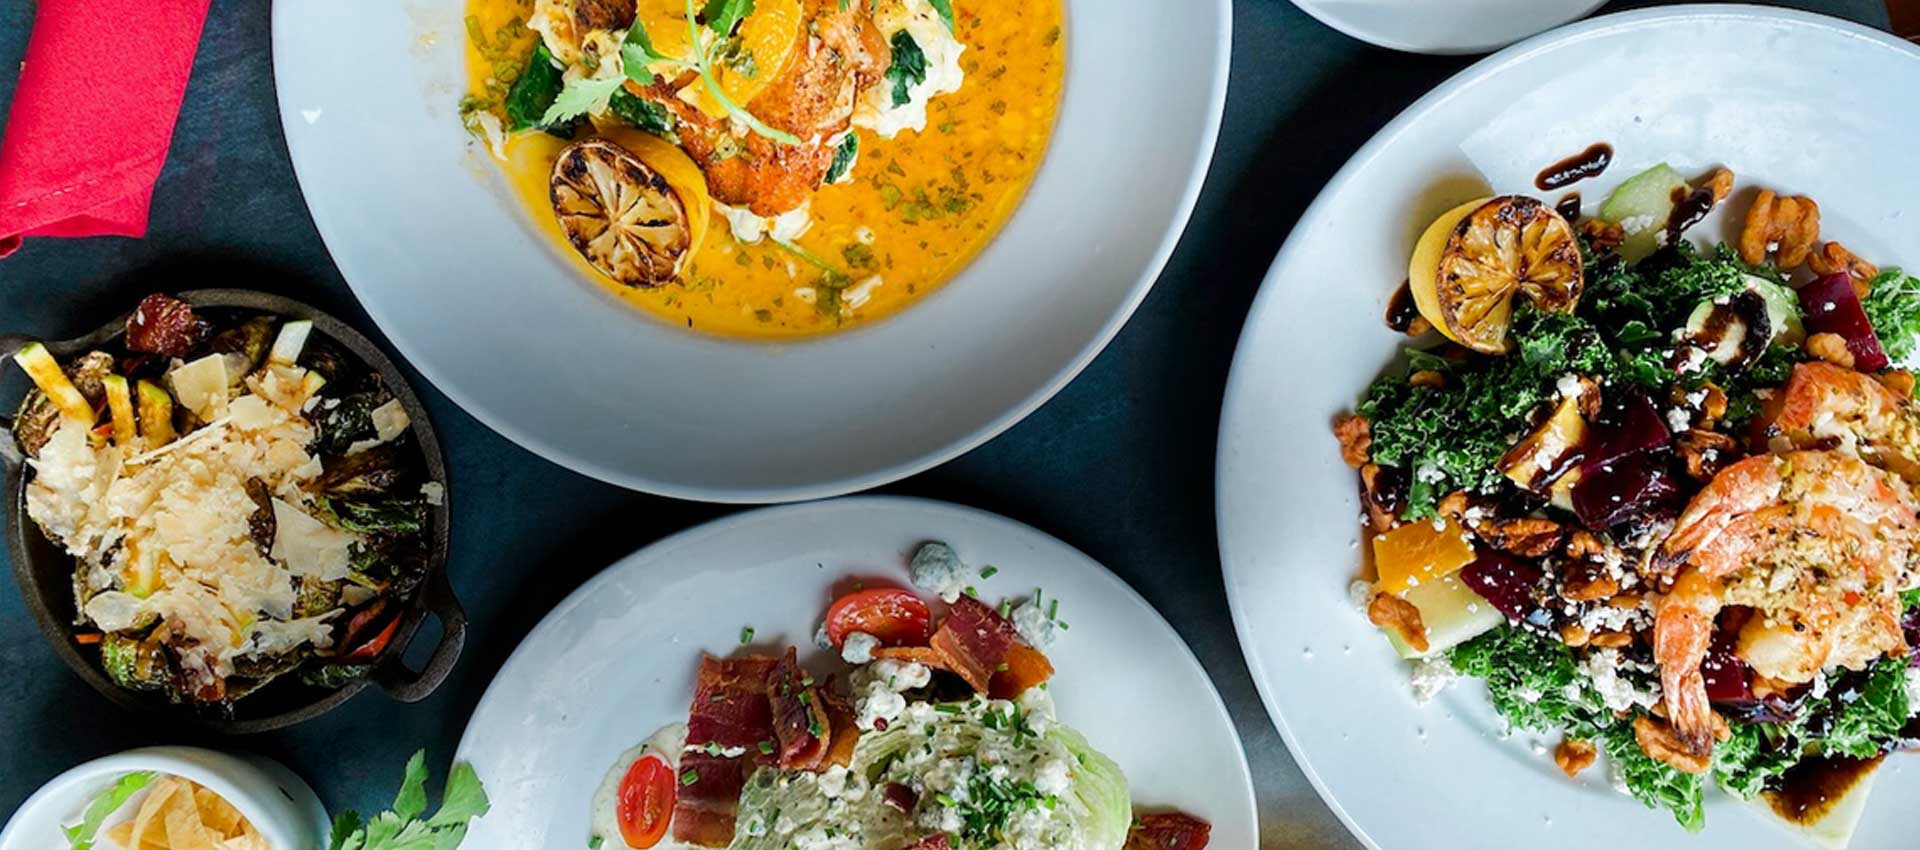 Delicious food from 2020 Market Scratch Kitchen & Bar